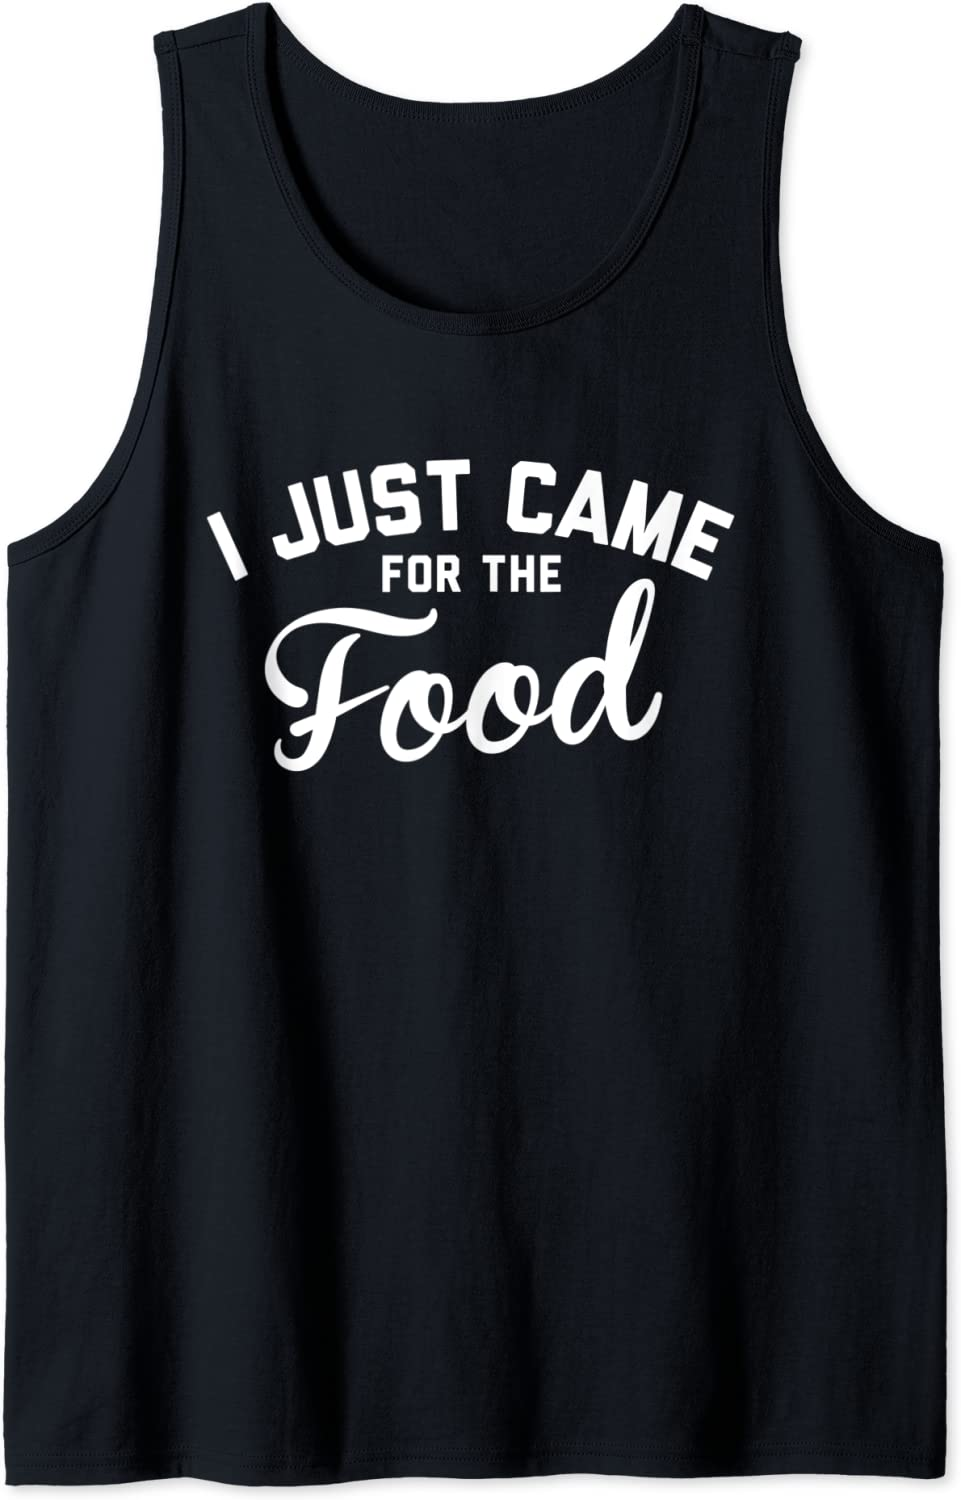 I Just Came for the Food Tank Top